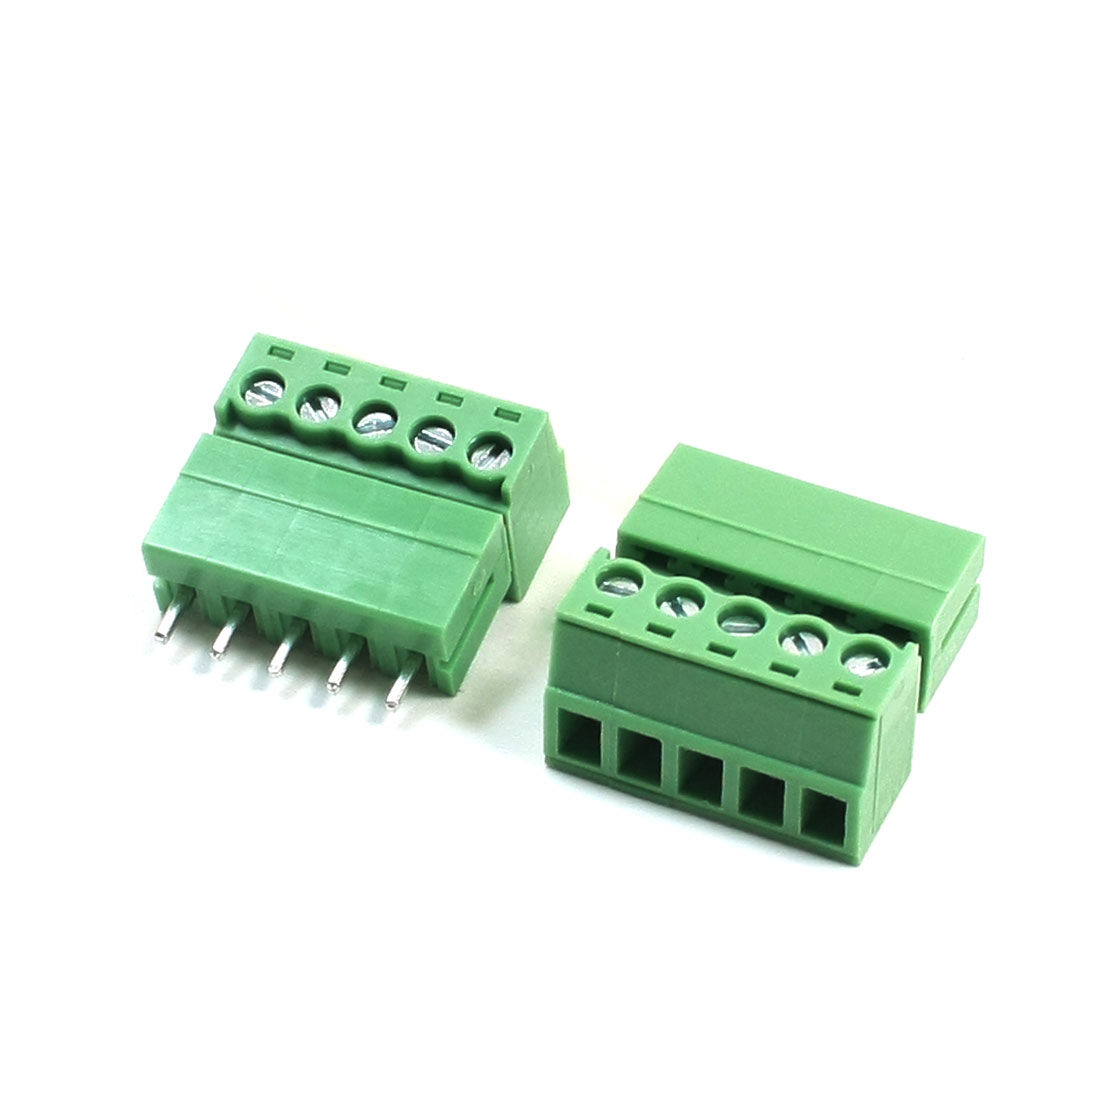 2 Pcs AC 300V 8A 3.81mm Pitch 22-16AWG 5Pin Pluggable Type Through Hole Mounting Green PCB Screw Terminal Block